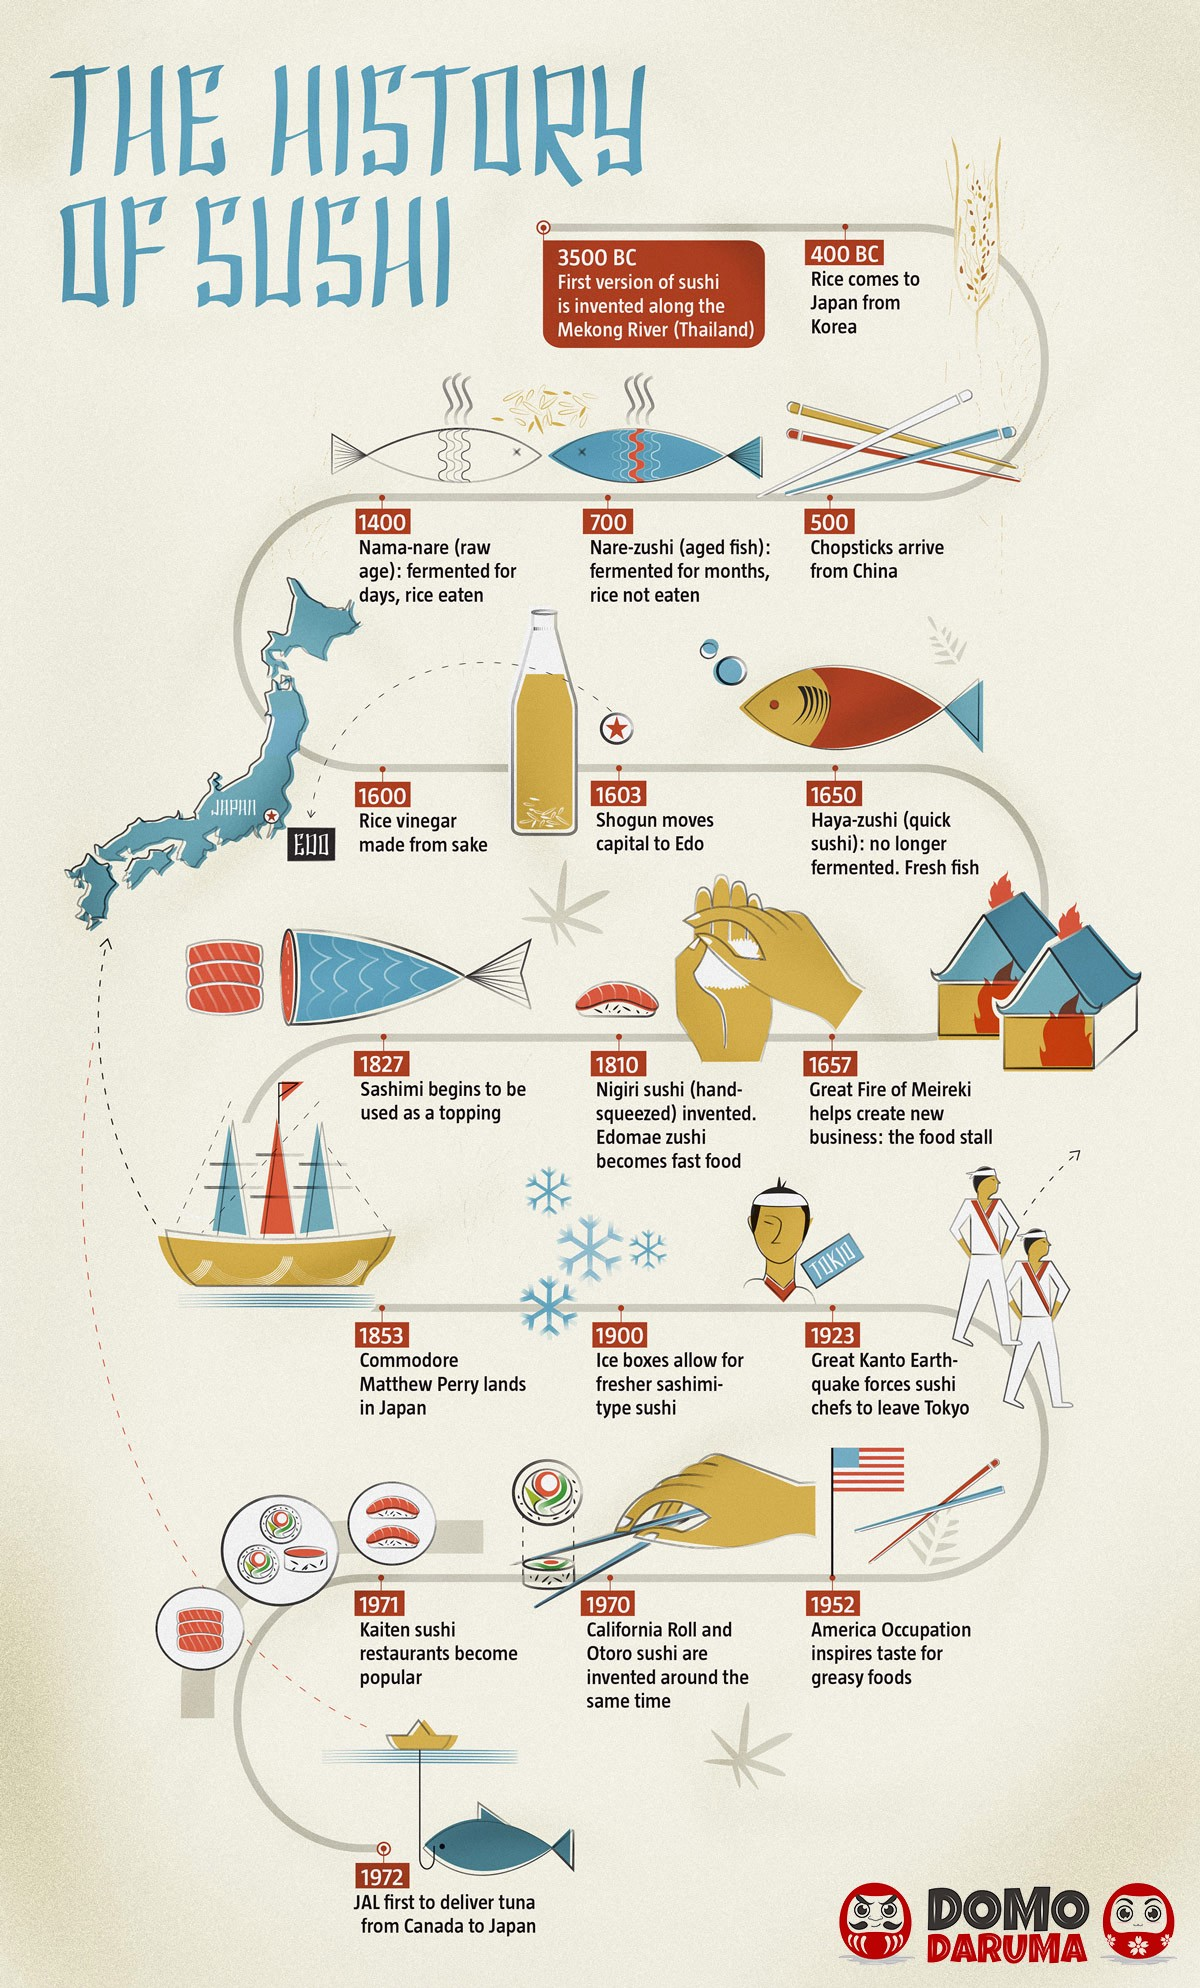 Learning history from infographics is more illustrative and simple than from other sources.